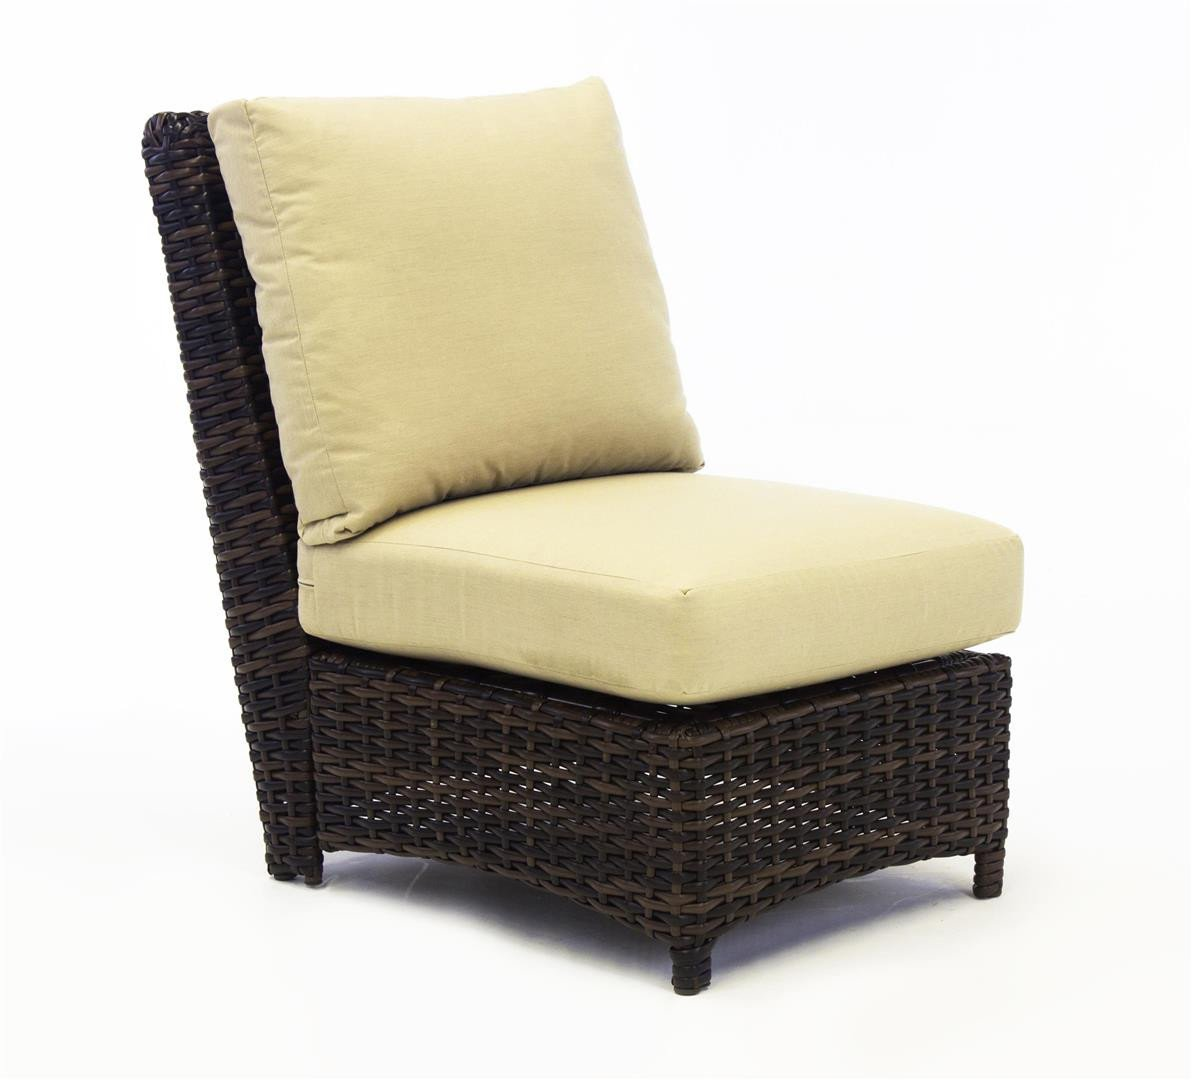 South Sea Rattan South Sea Rattan St. Tropez Sectional Armless Piece Sectional Piece - Rattan Imports